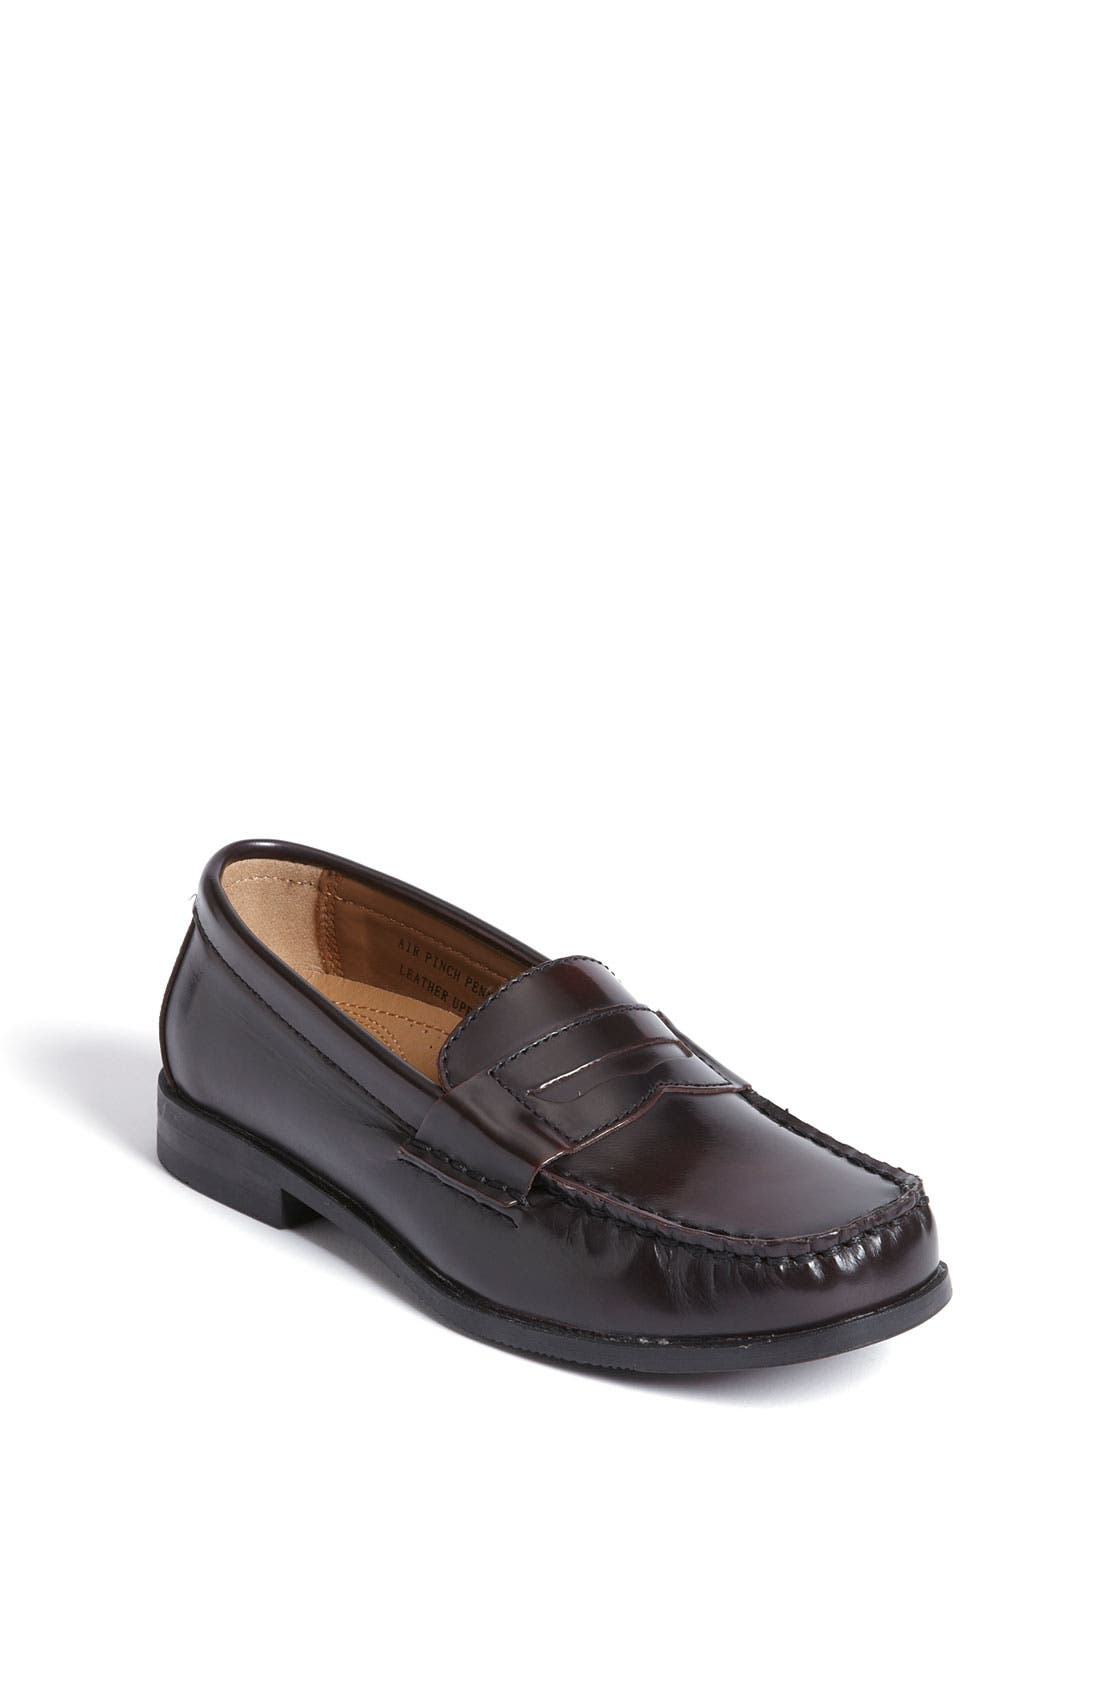 Alternate Image 1 Selected - Cole Haan 'Air Pinch' Penny Loafer (Toddler, Little Kid & Big Kid)